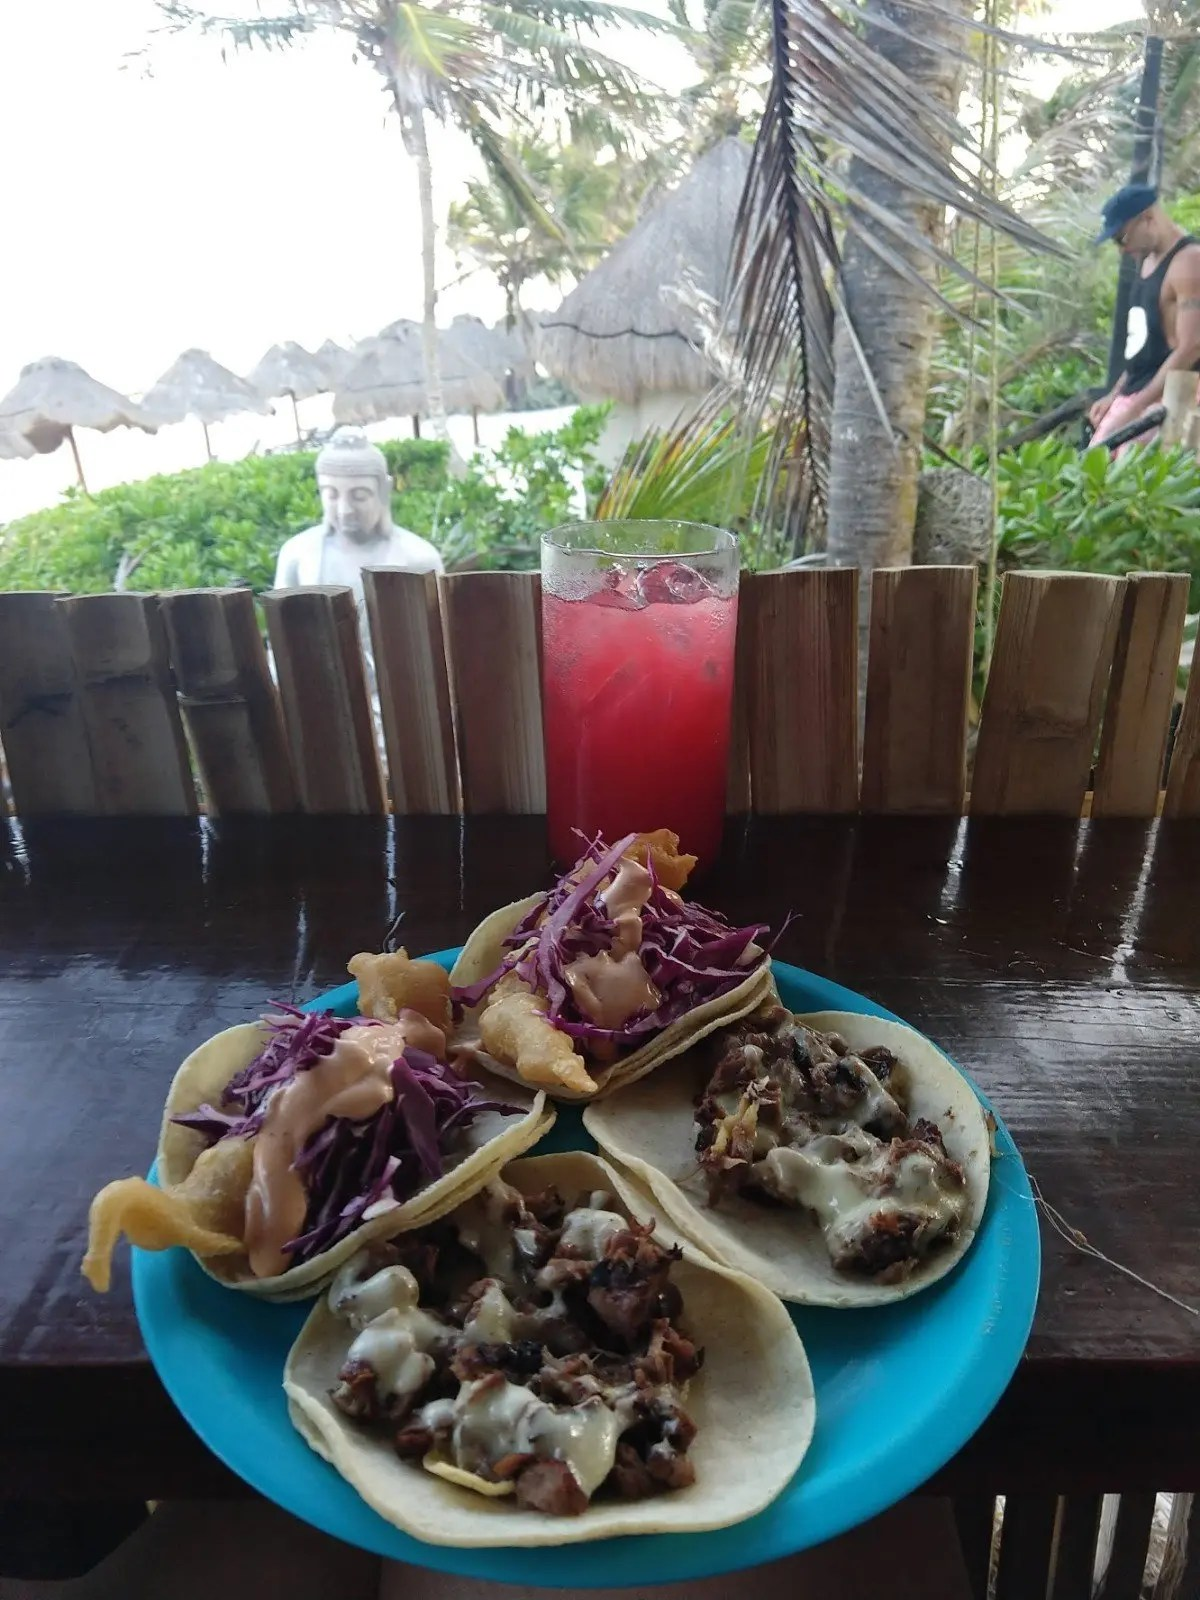 Tacos at Taqueria La Eufemia in Tulum